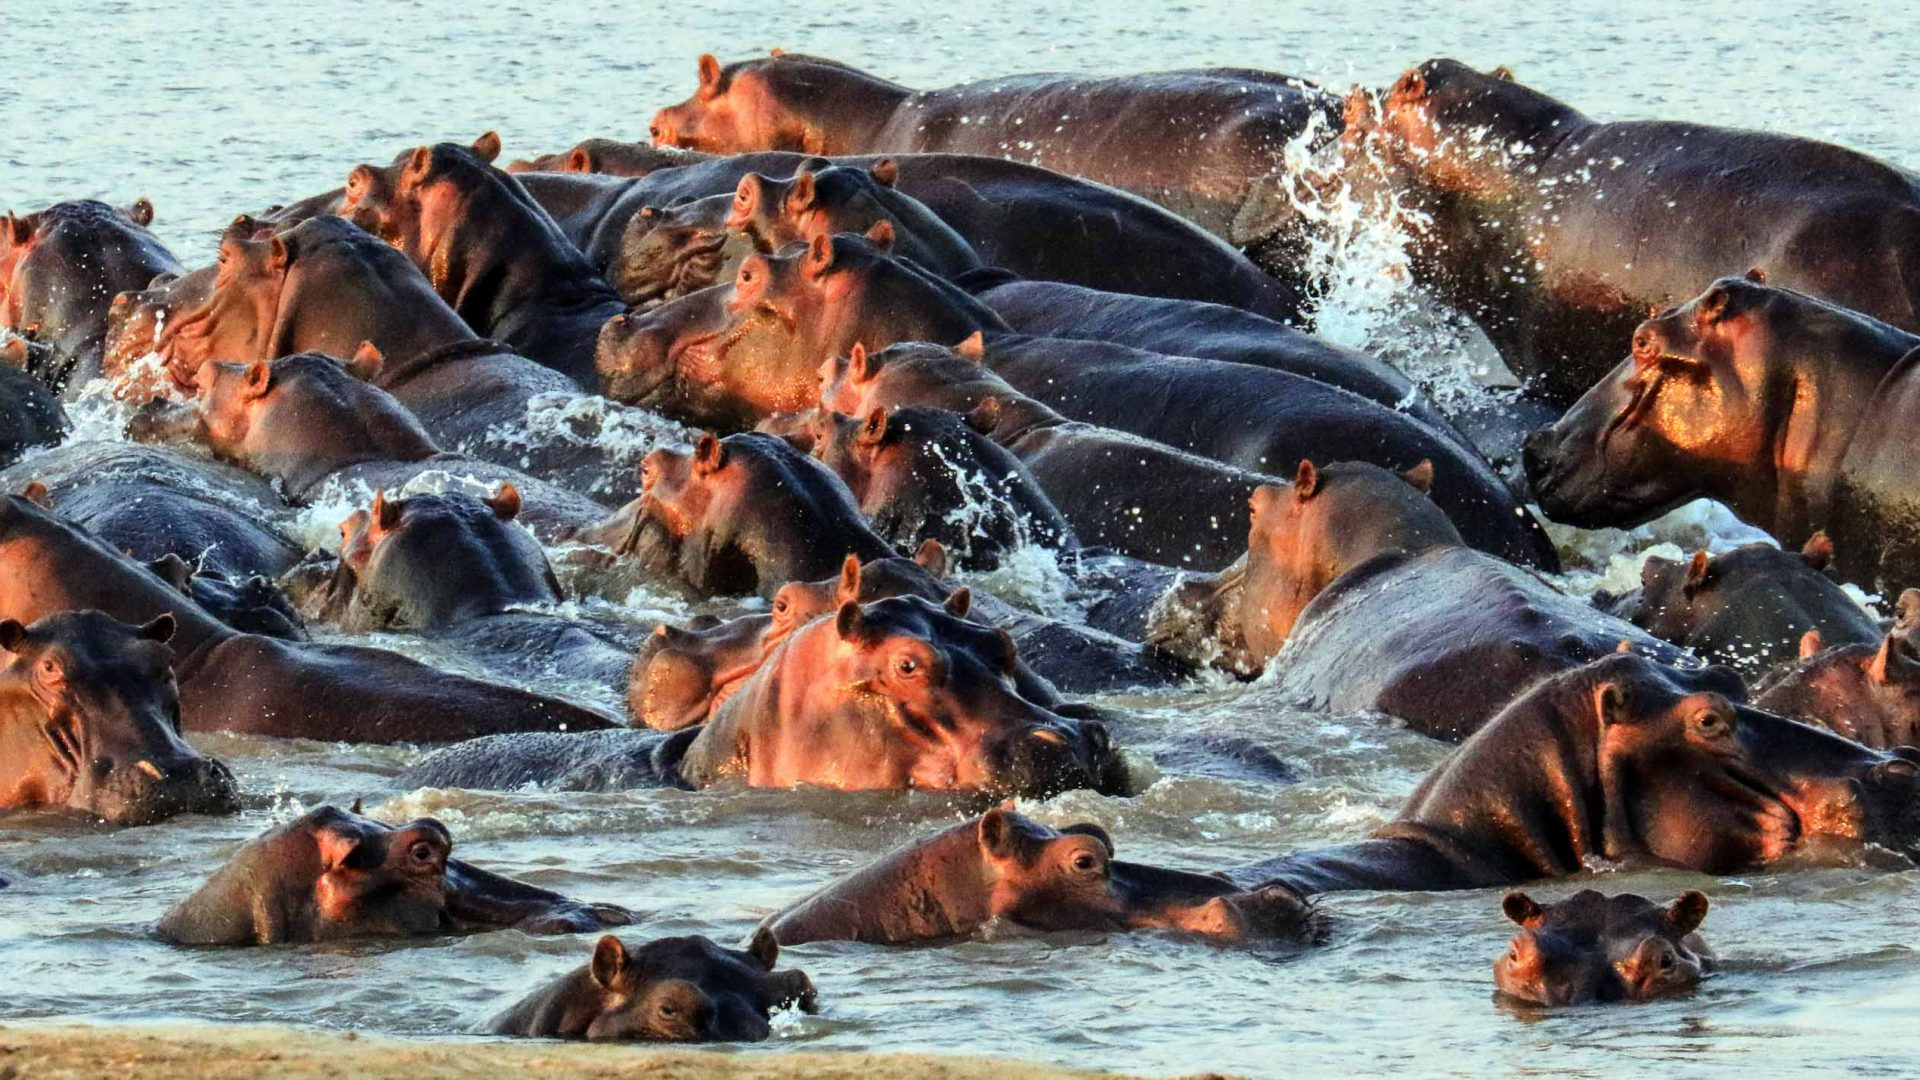 Hippos thrash about in the Luangwa river.